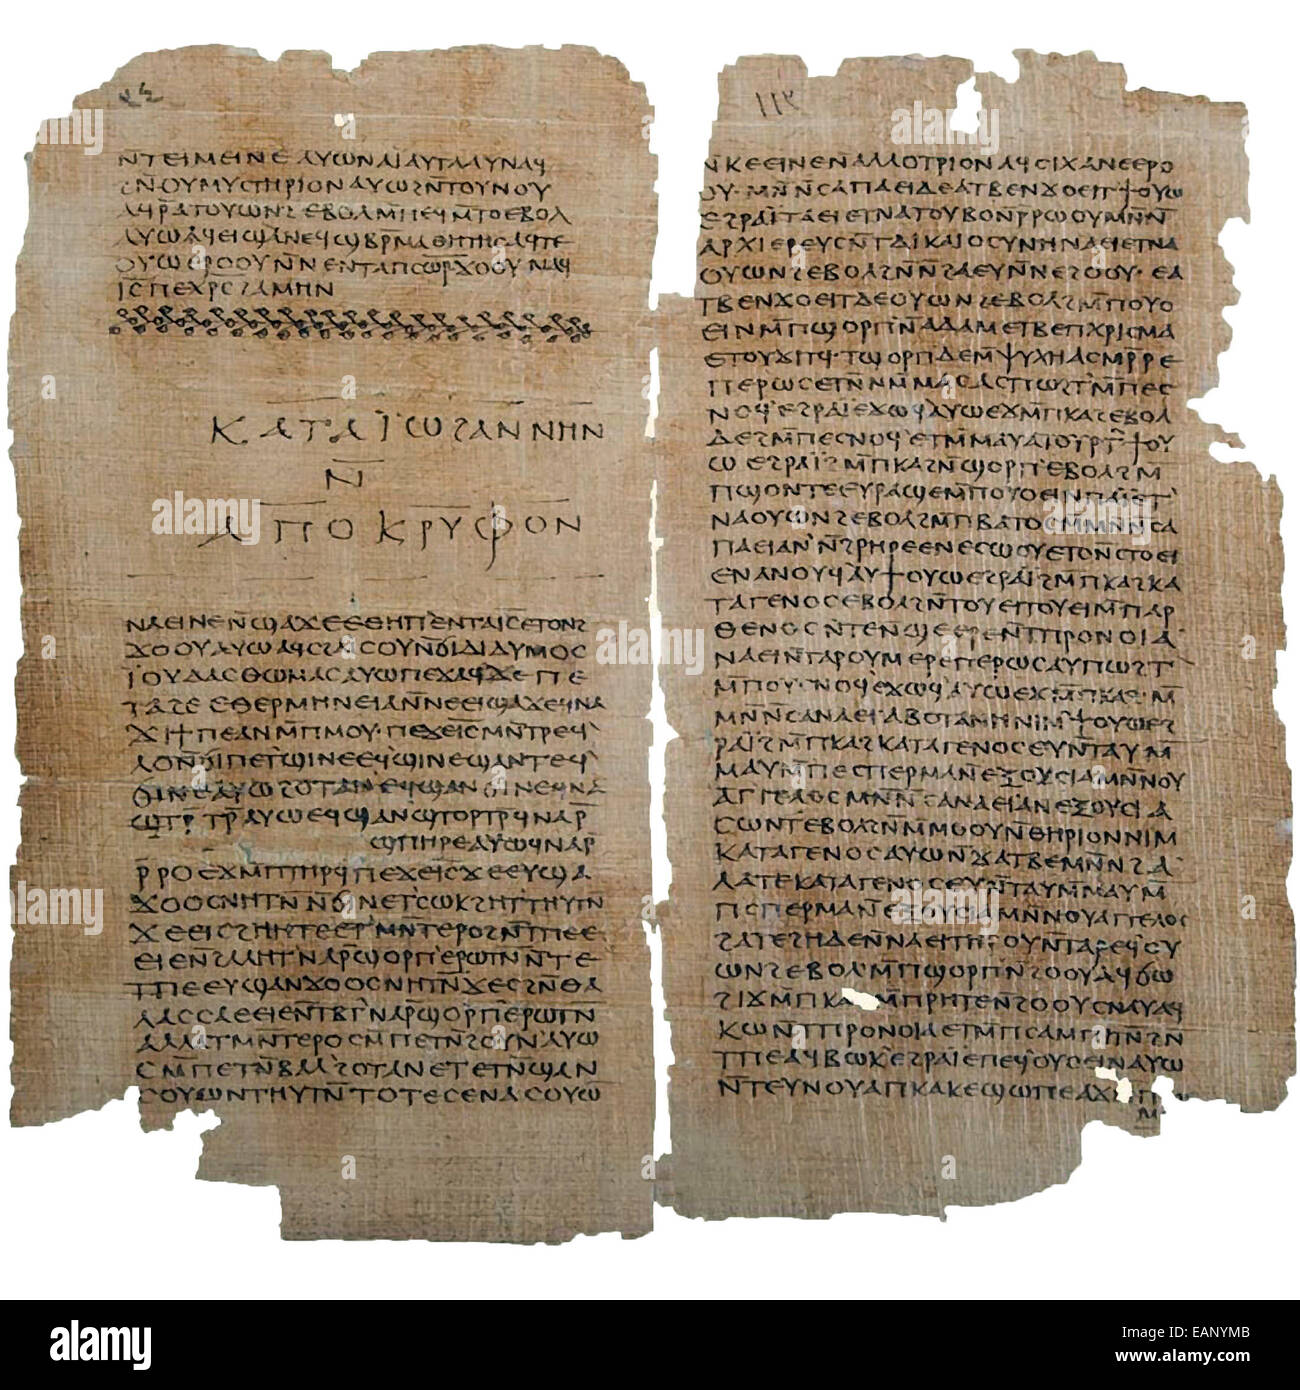 2717. Nag Hammadi library a collection of early Christian Gnostic texts discovered near the town of Nag Hammadi - Stock Image